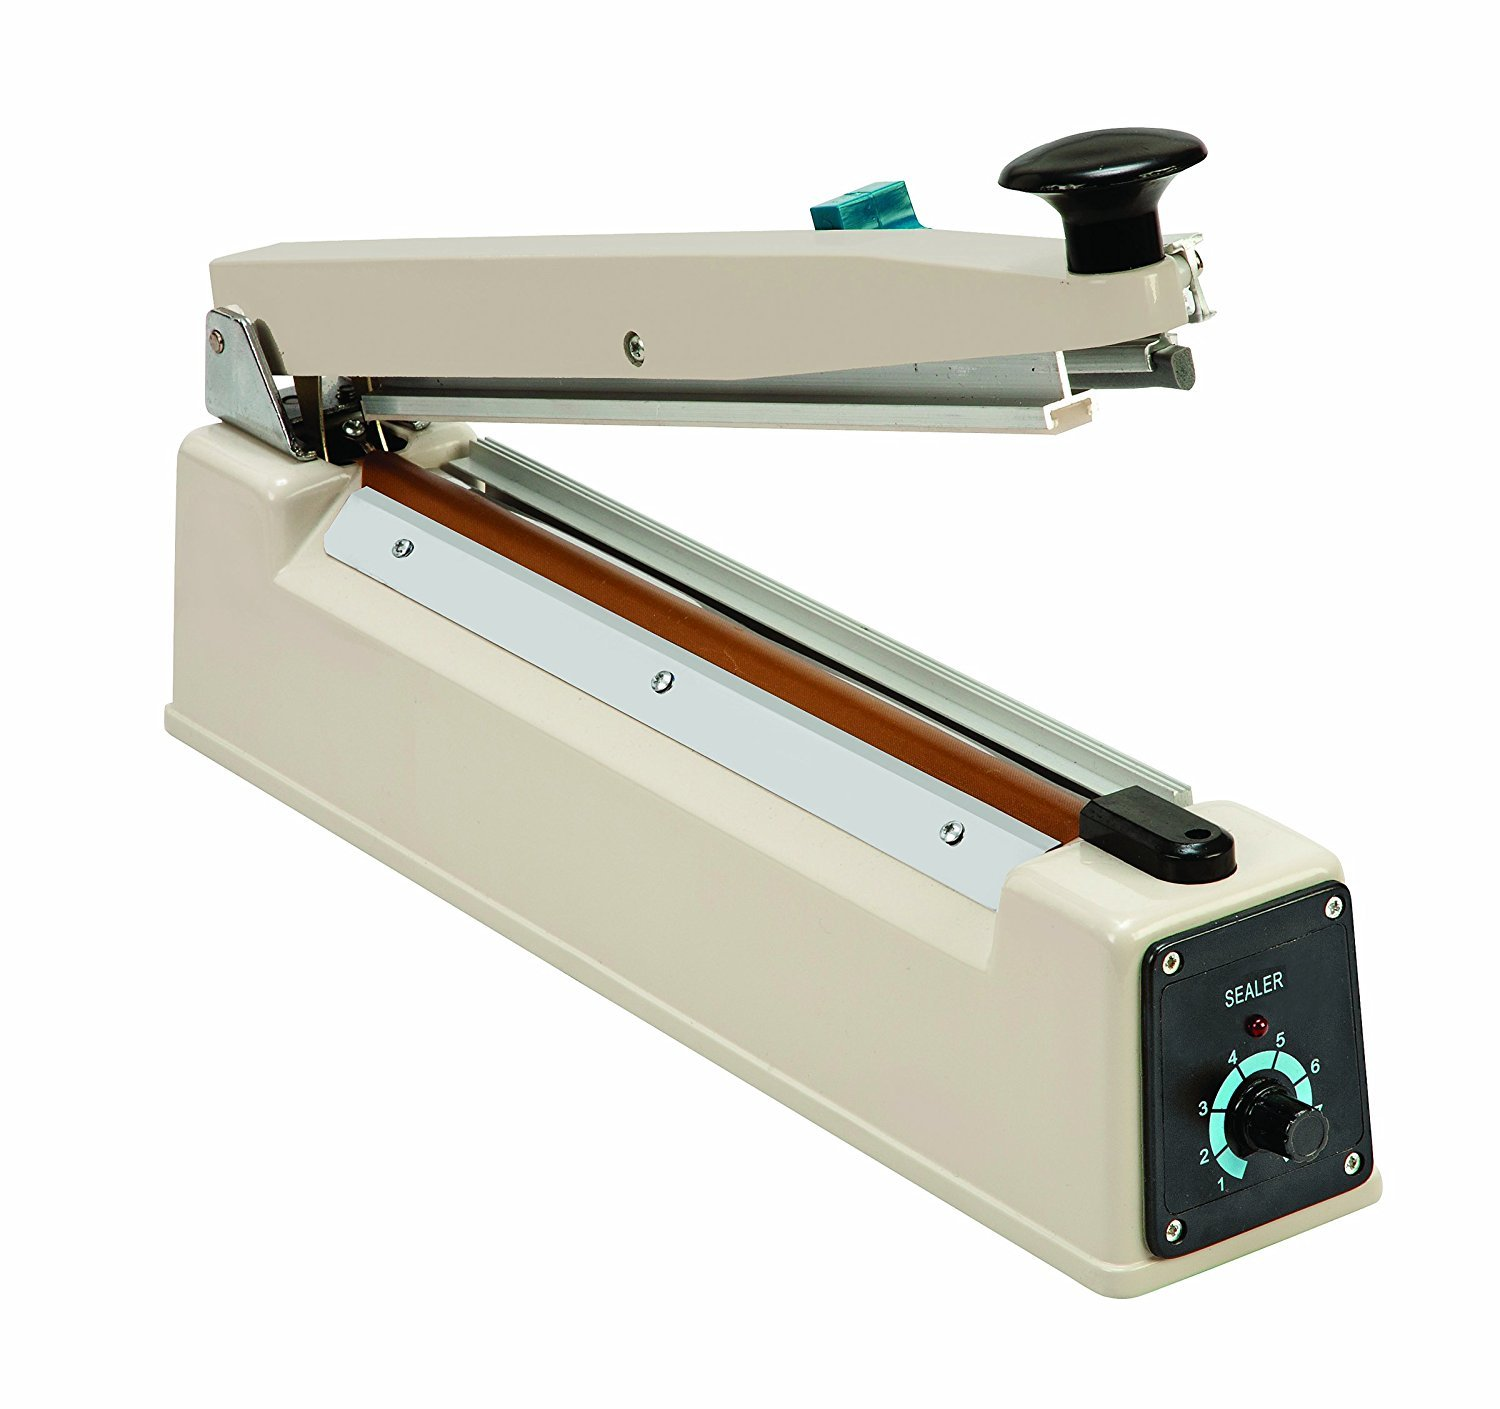 Heathrow Scientific HEA28272 305mm Heat Sealer with Cutter and US/Taiwan/Japan Plug, 110/120V AC, 450 Watts